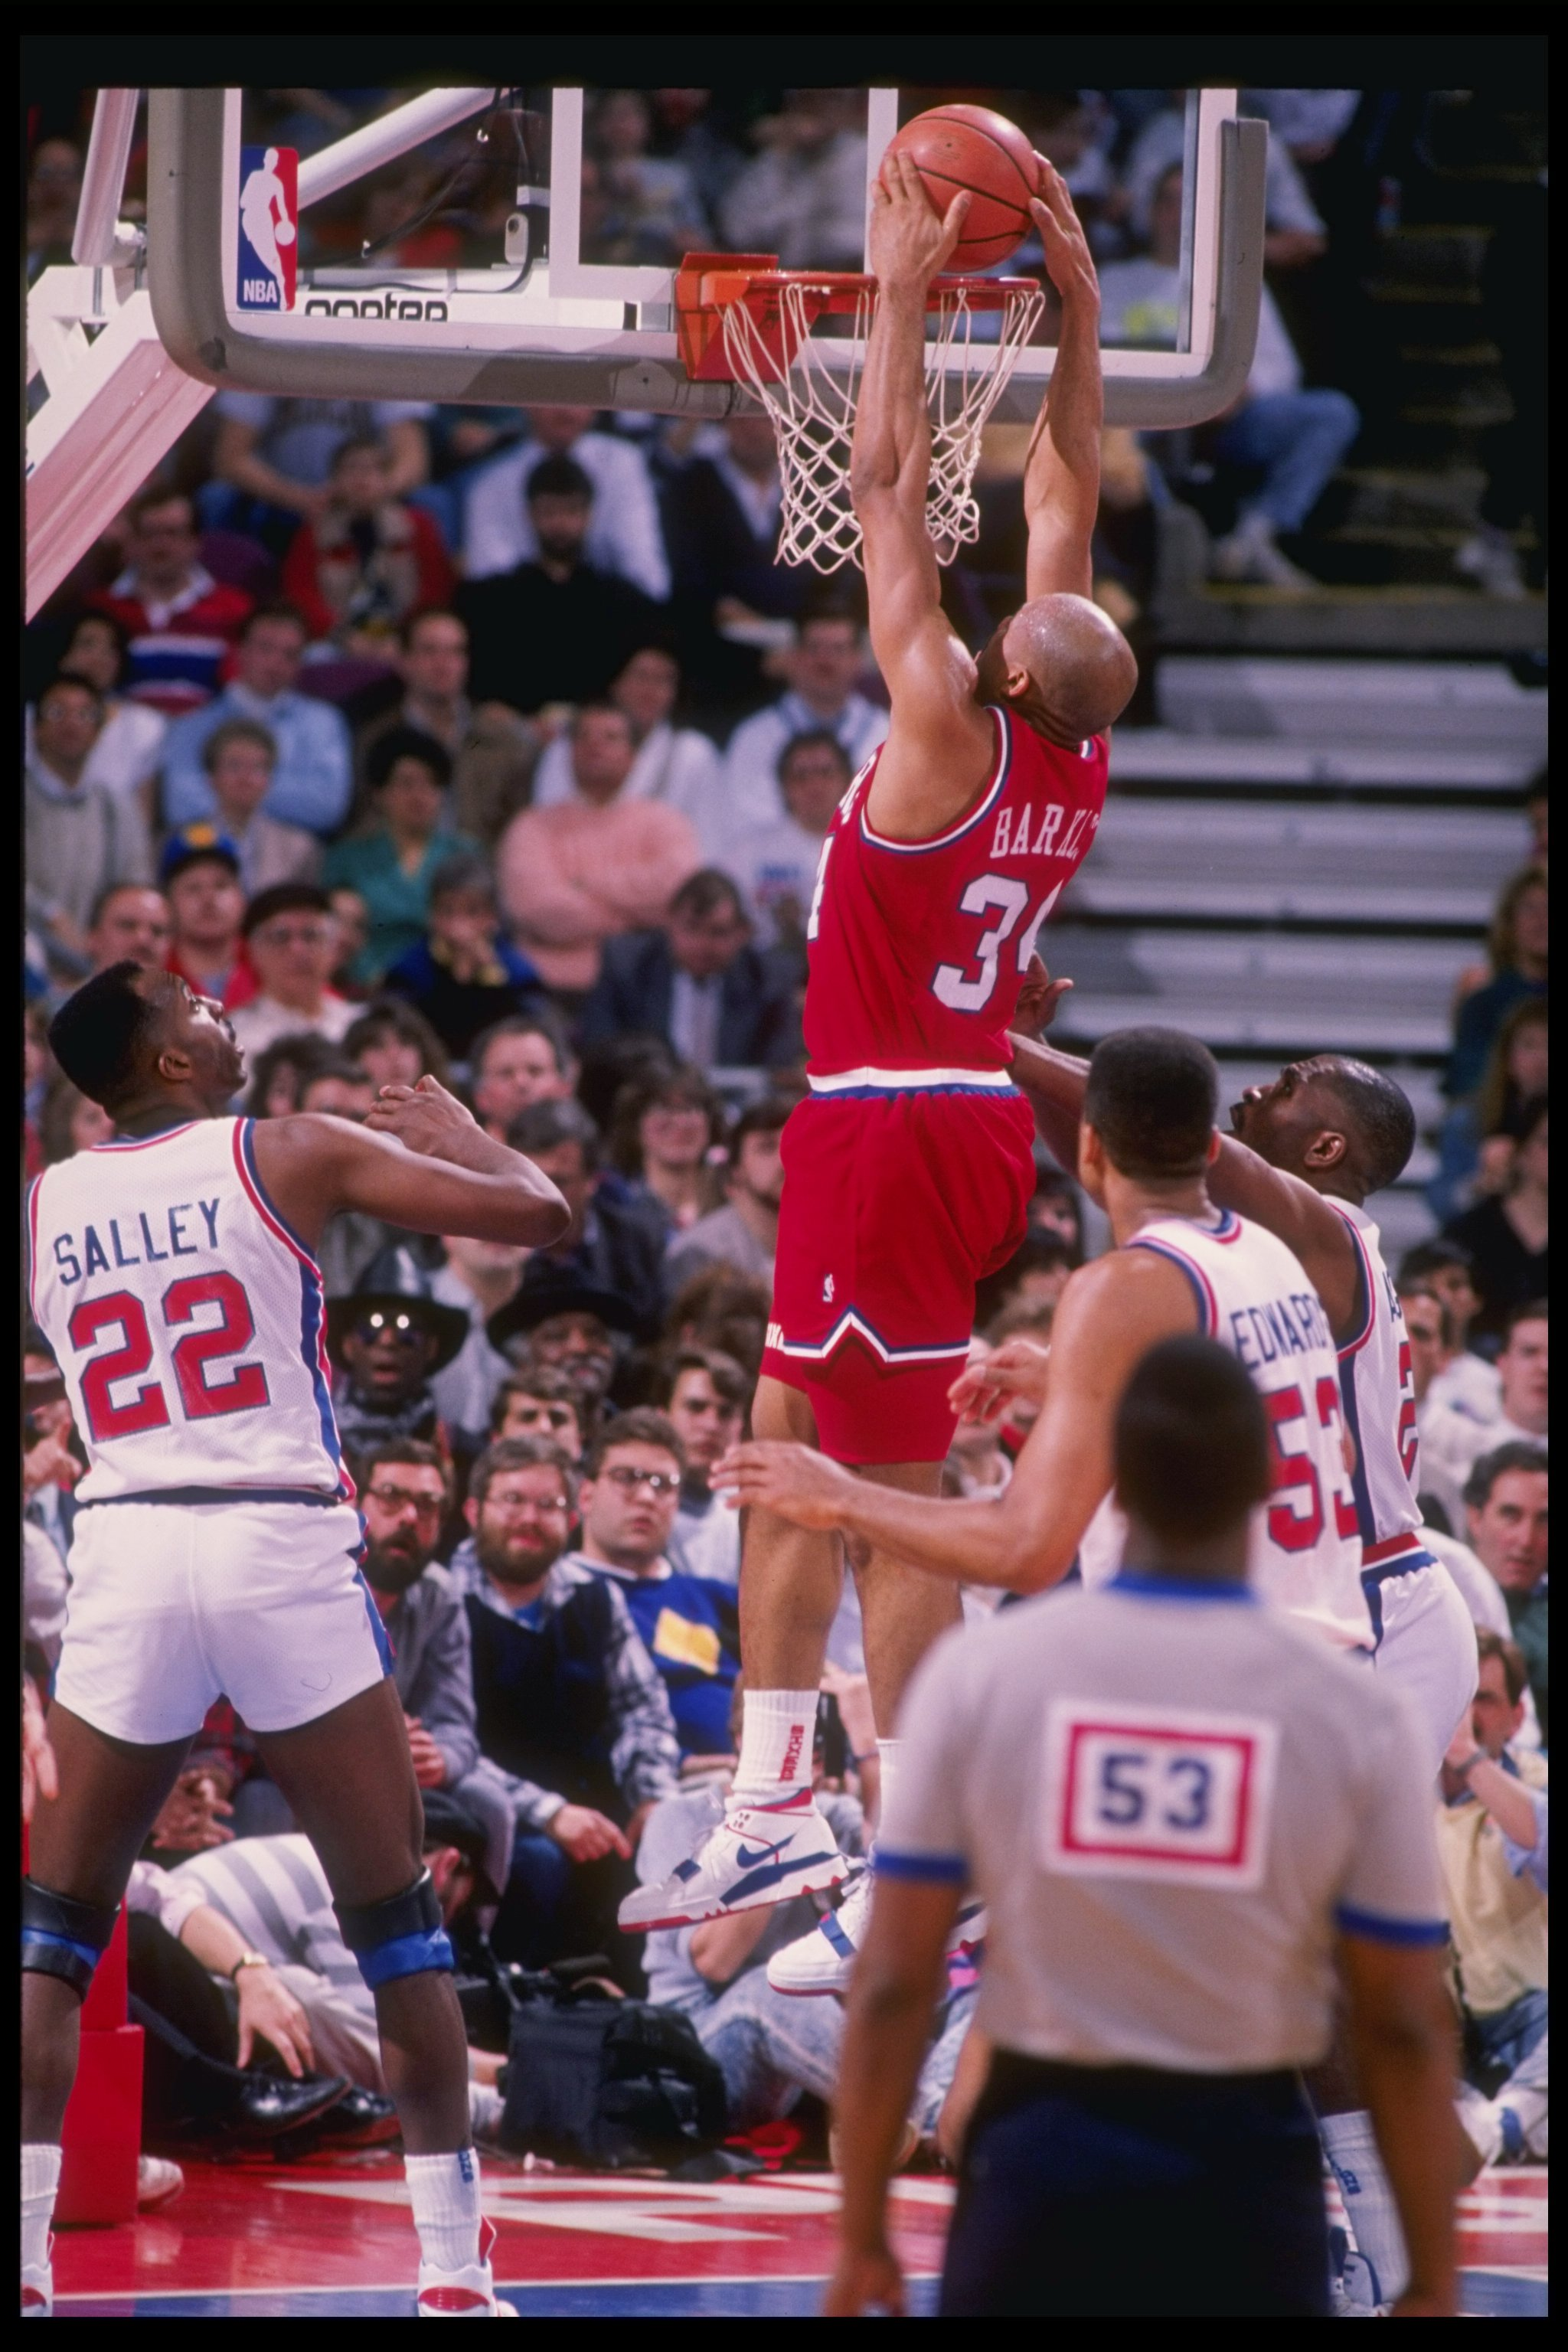 Forward Charles Barkley of the Philadelphia 76ers slam dunks during a game against the Detroit Pistons at The Palace of Auburn Hills in Auburn Hill, Michigan.